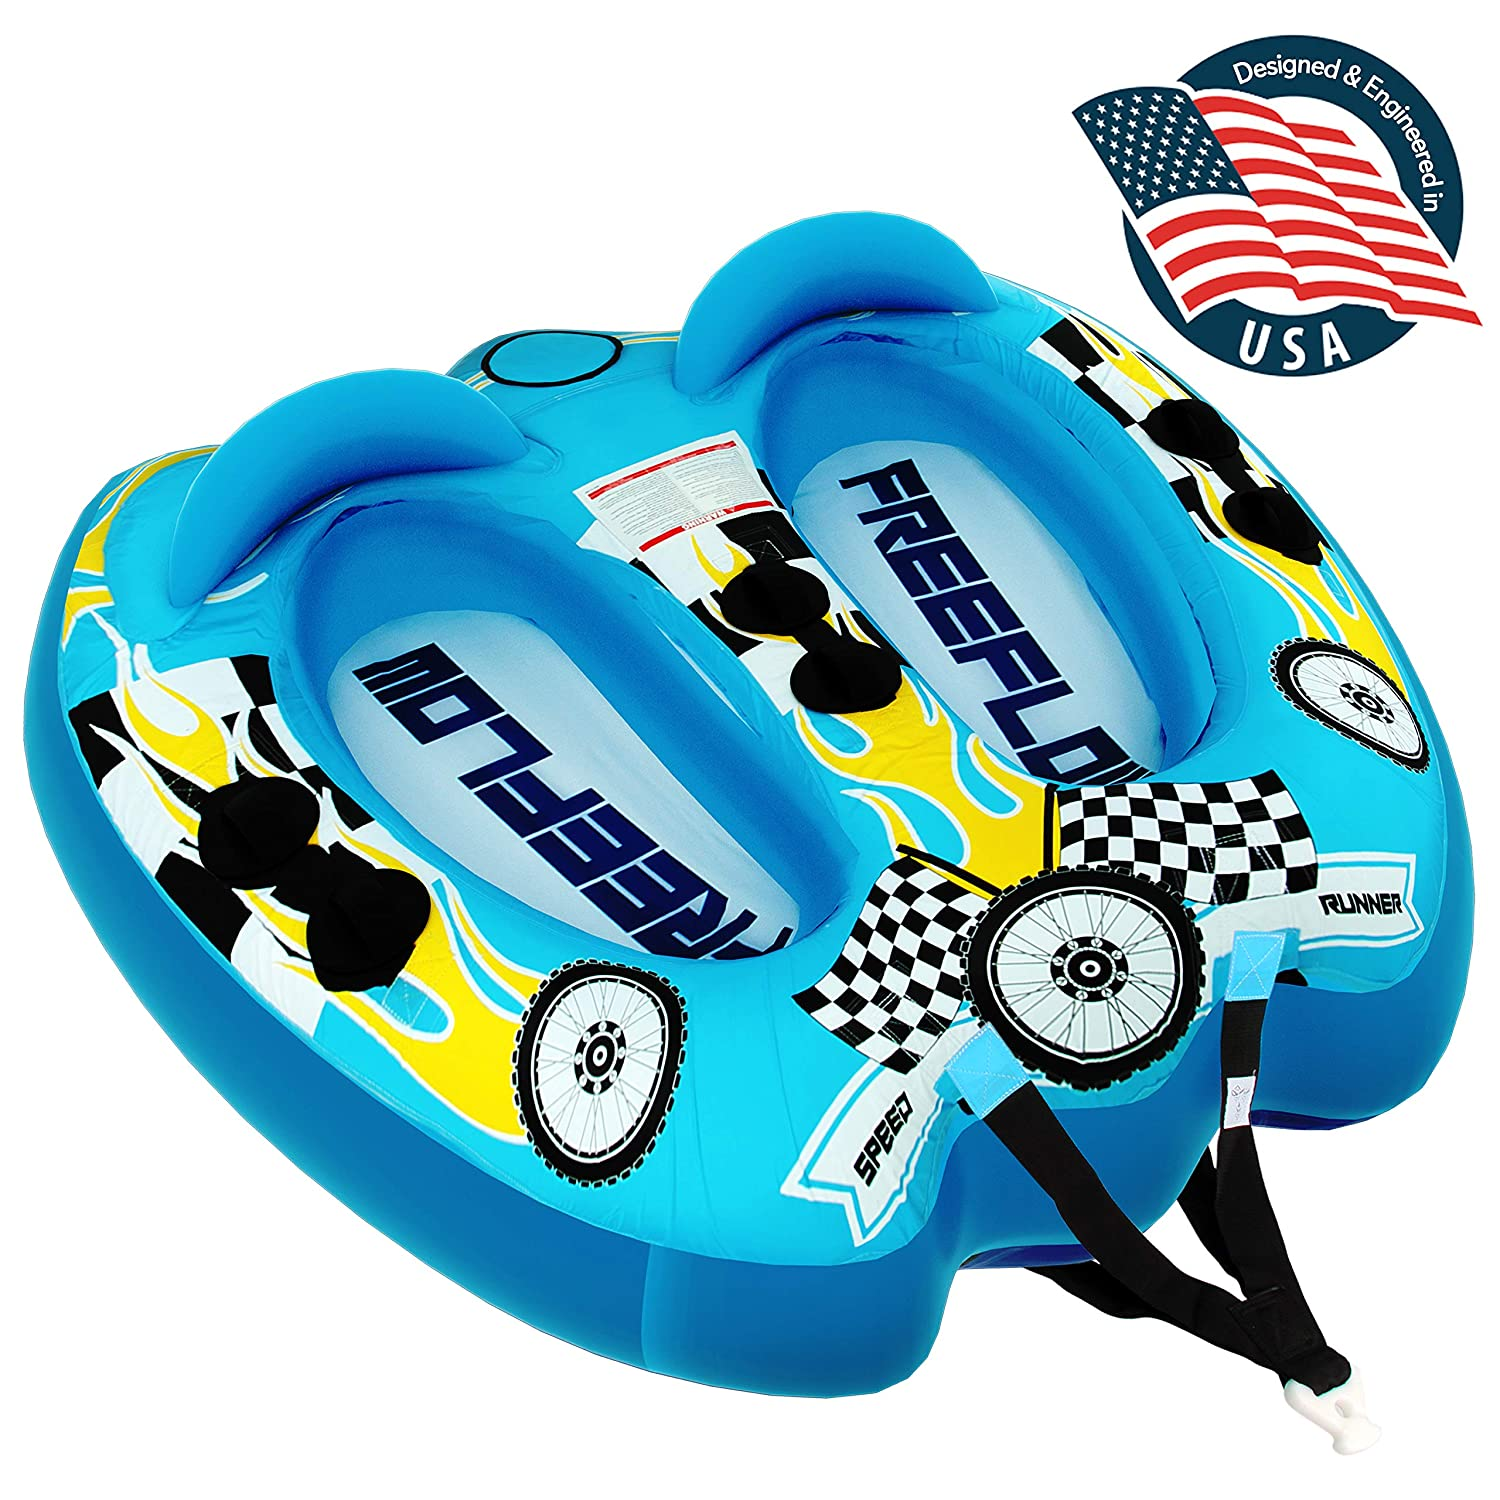 Watersports Inflatable Towable Booster Tube